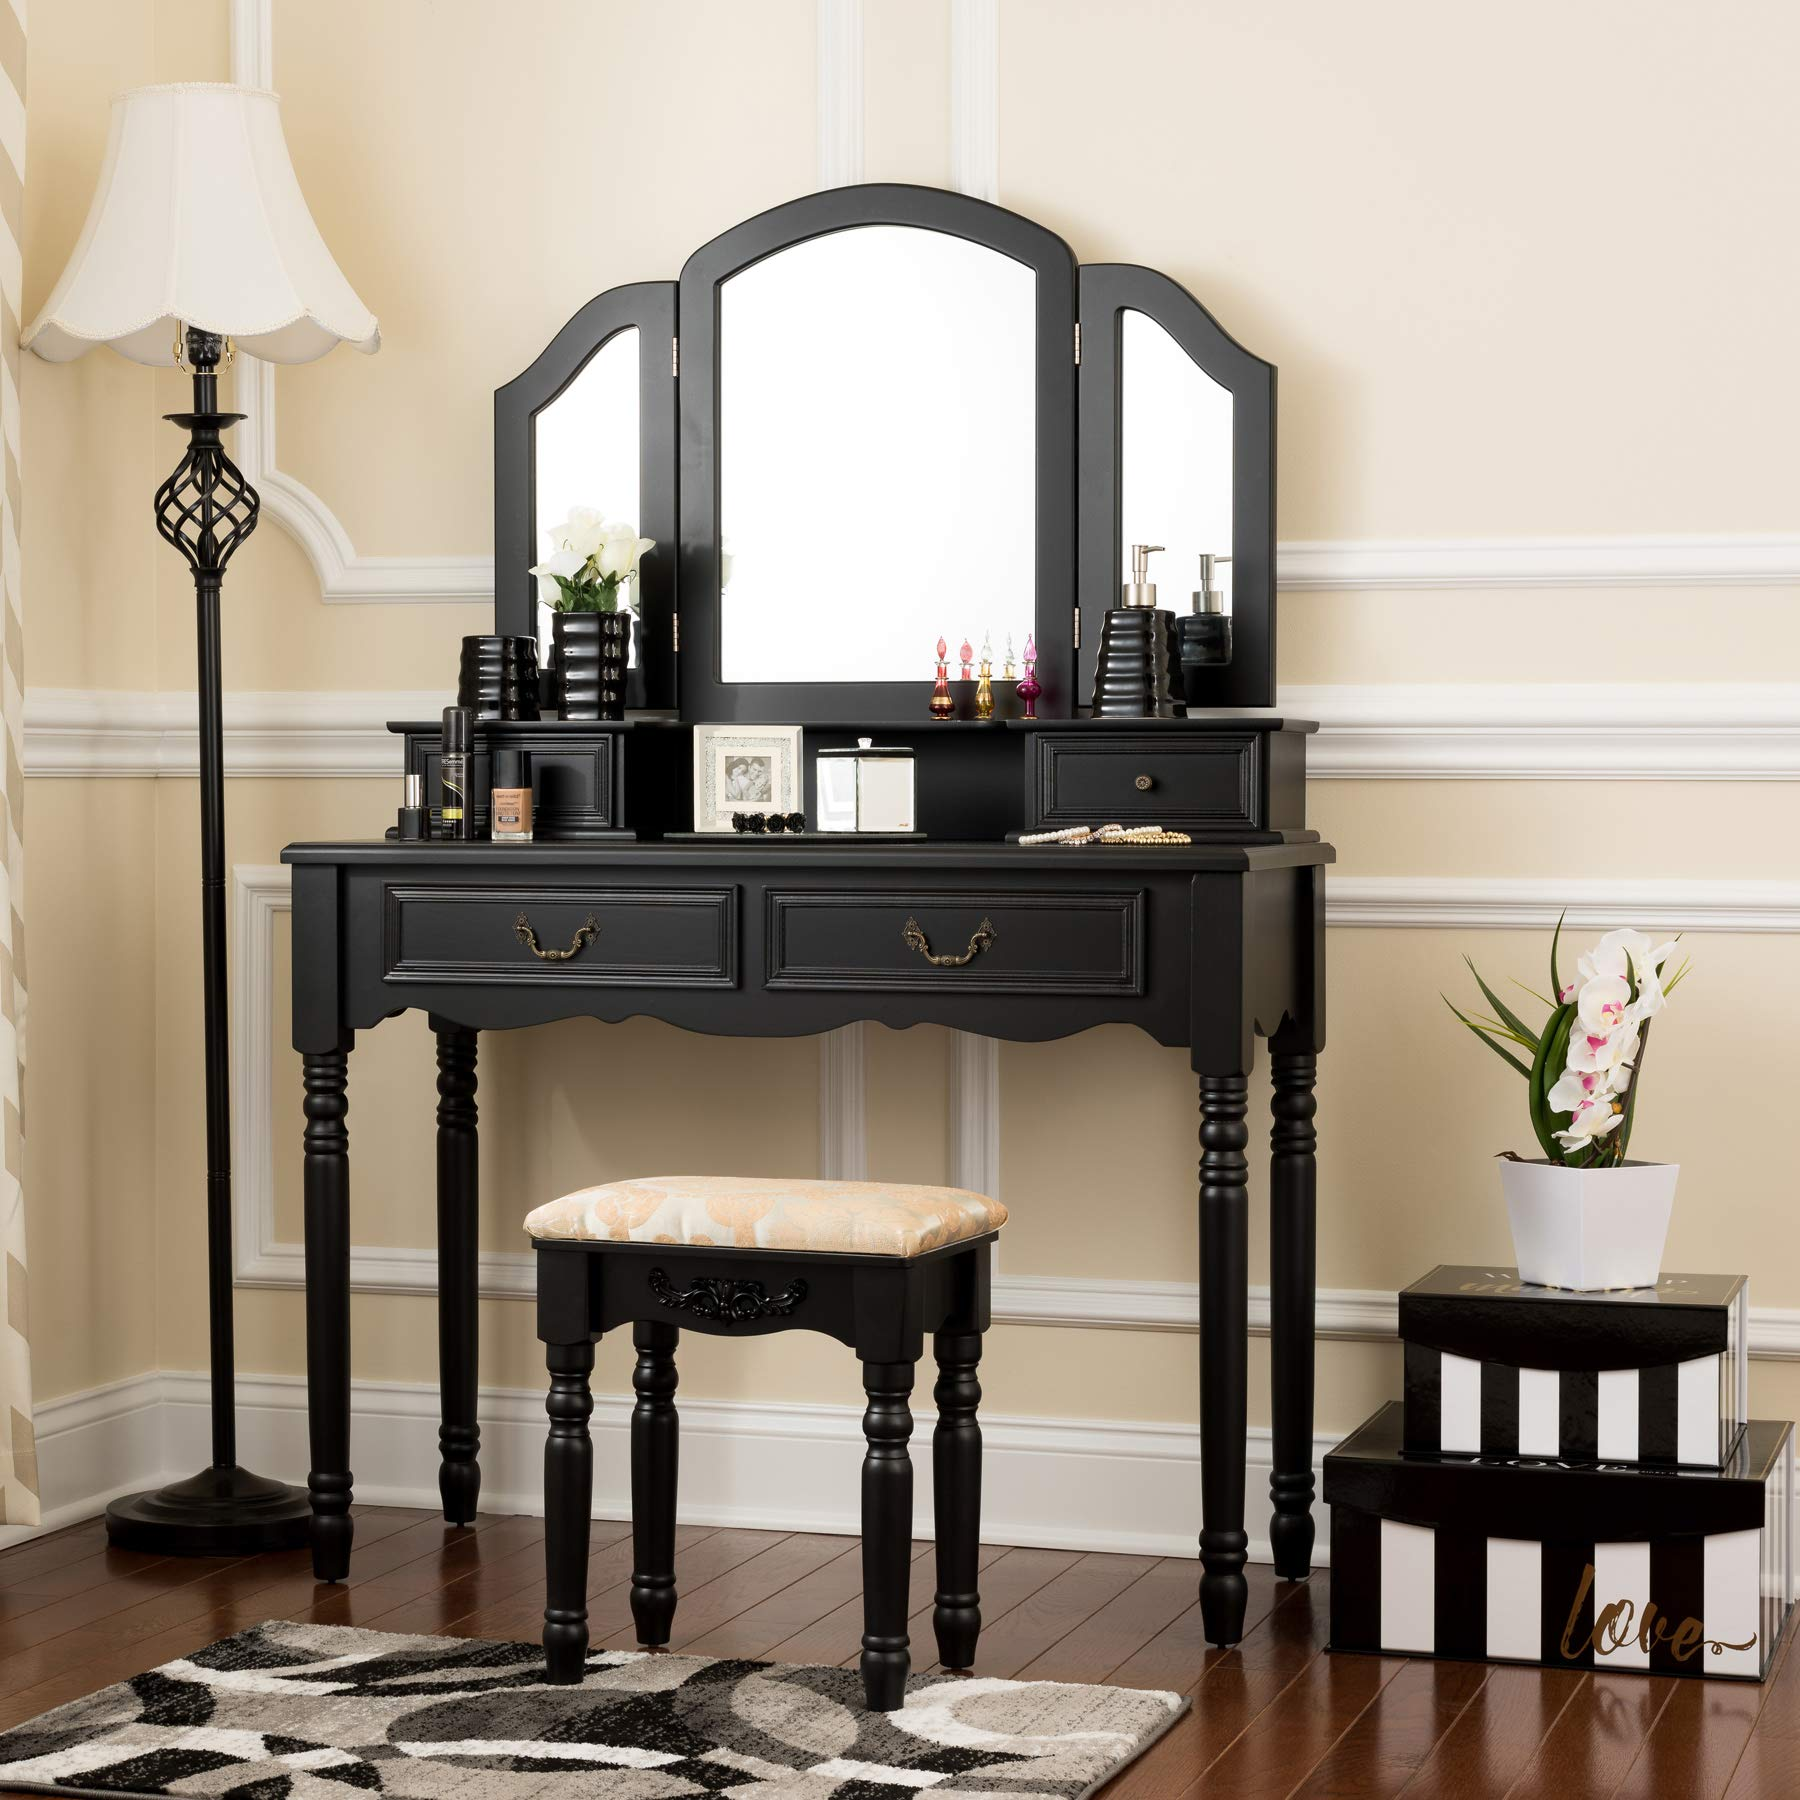 Fineboard FB-VT06-BKV Elegant Vanity Set Makeup Dressing Table with 3 Mirrors and Stool, 4 Drawers, Black